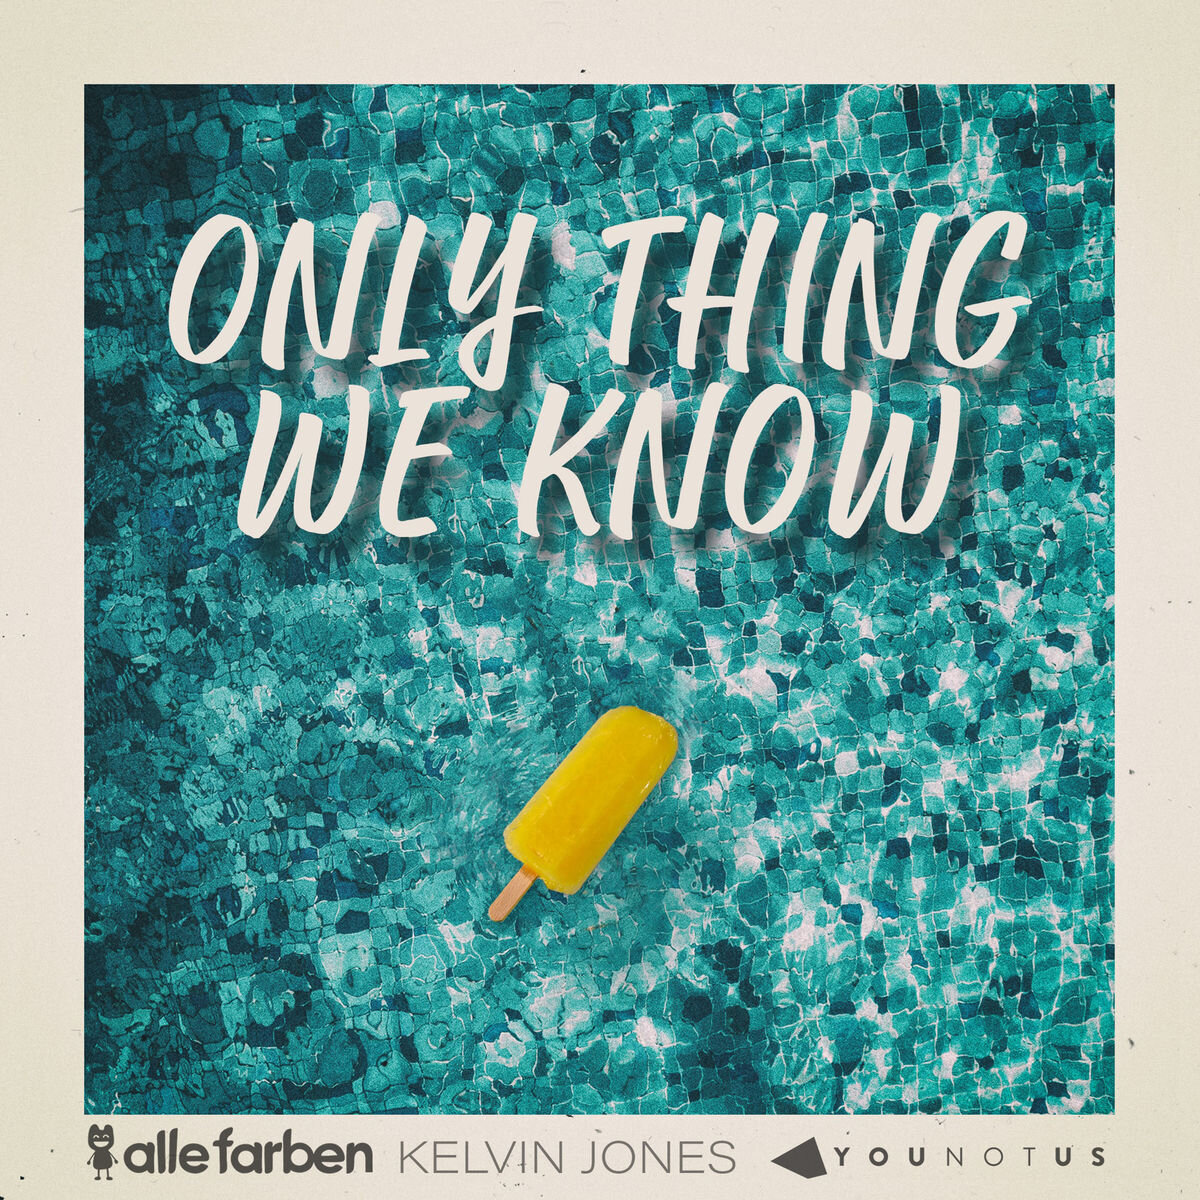 ONLY THING WE KNOW - Kelvin's second gold record and first number 1 radio hit. Co-written, recorded, and released along with Alle Farben and Younotus